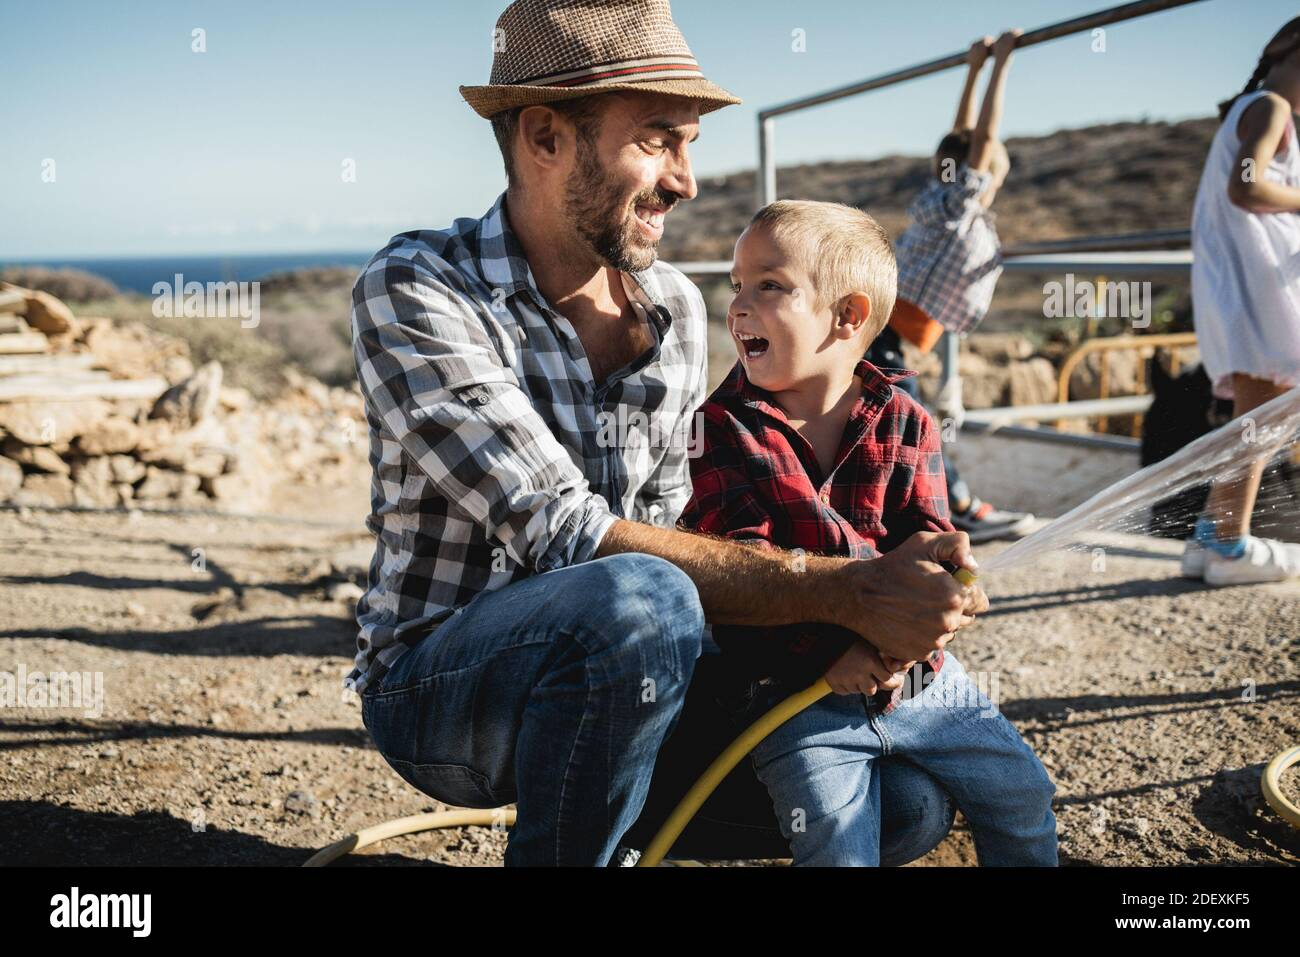 Happy father and son having fun together at ranch farm - Focus on kid face Stock Photo